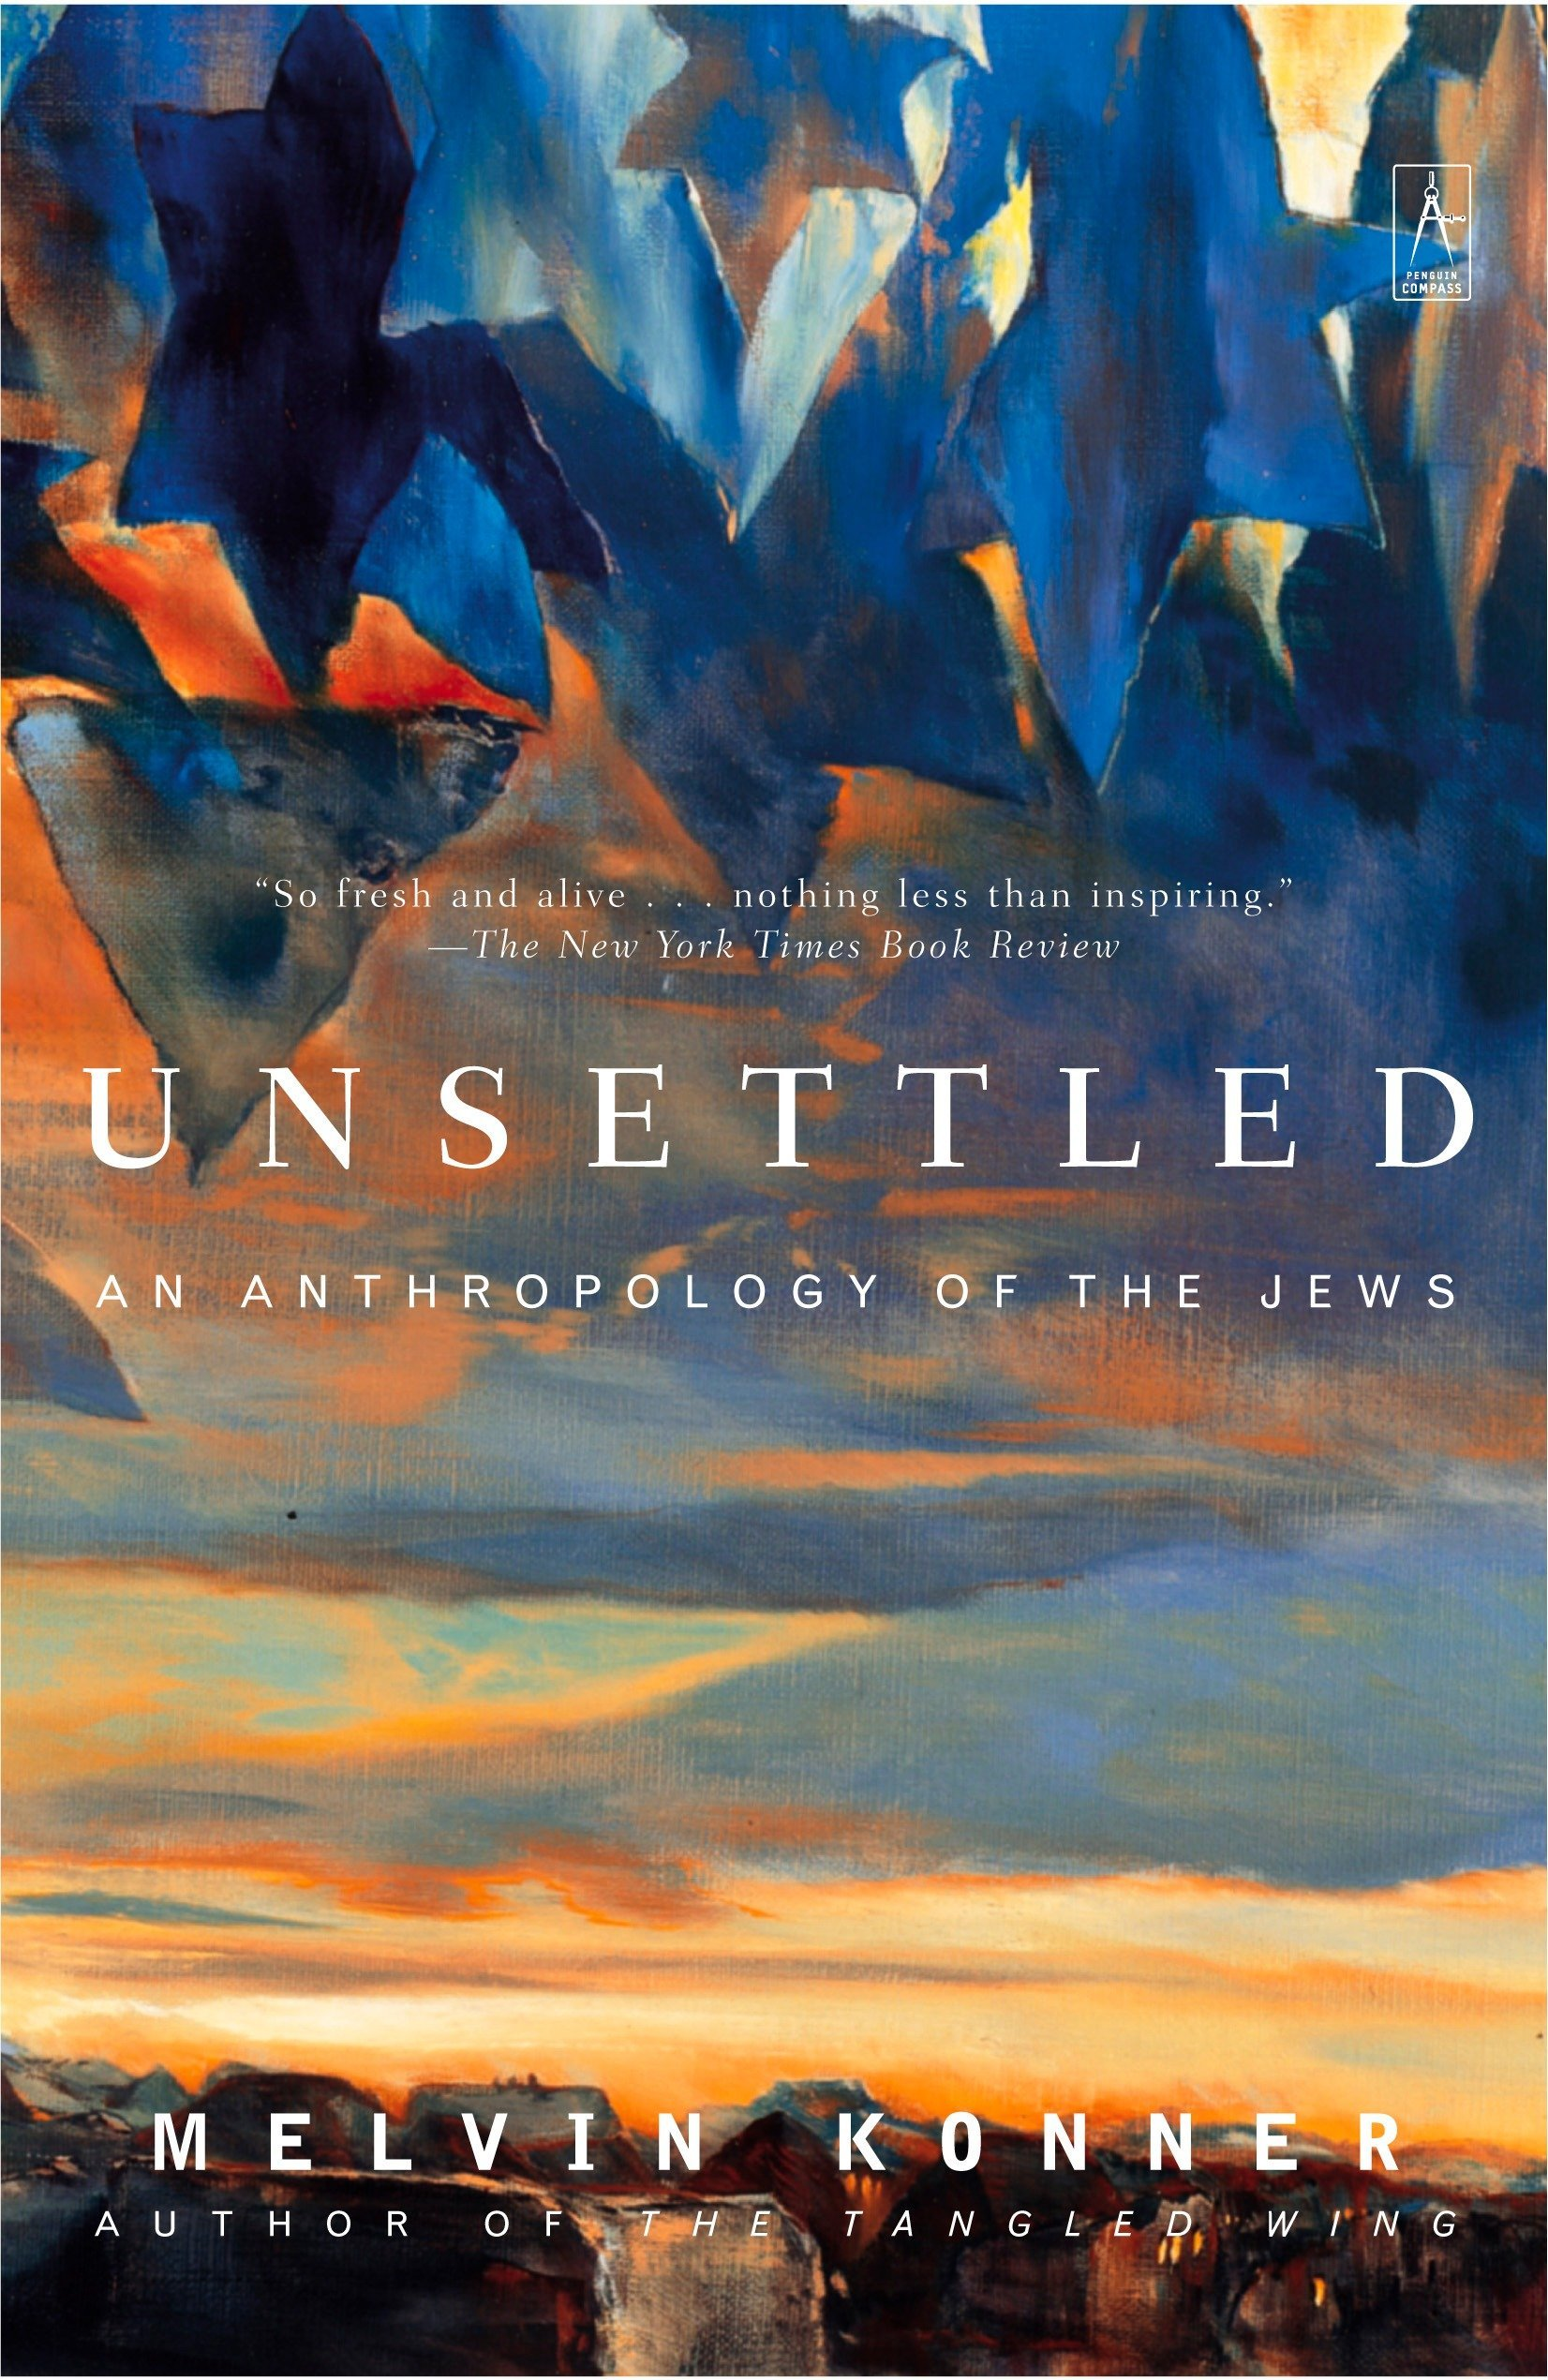 Unsettled: An Anthropology of the Jews: Melvin Konner: 9780142196328:  Amazon.com: Books